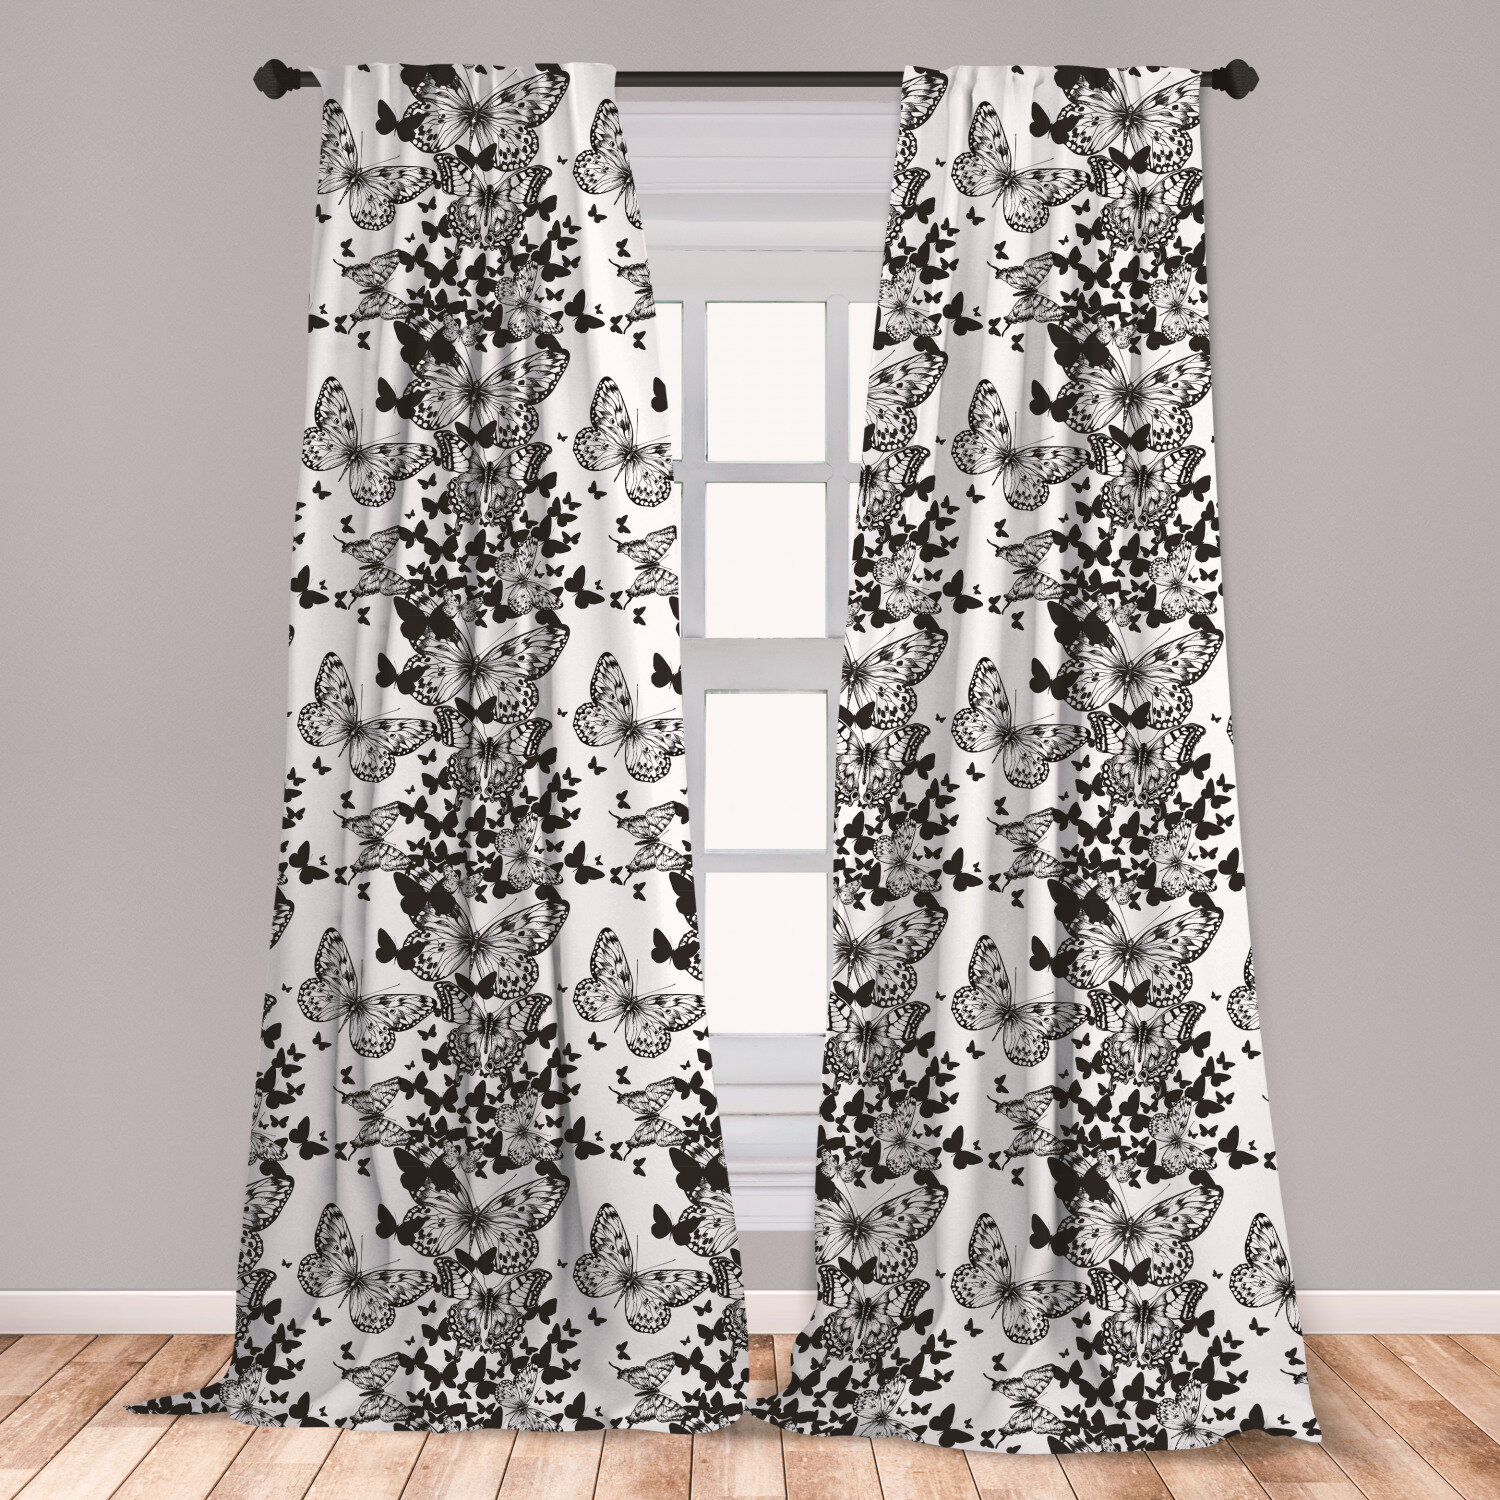 East Urban Home Antigua Black And White Curtains Starry Night Drifter Butterfly Silhouettes Monochrome Sketch Style Fauna Window Treatments 2 Panel Set For Living Room Bedroom Decor 56 X 63 Black White Wayfair